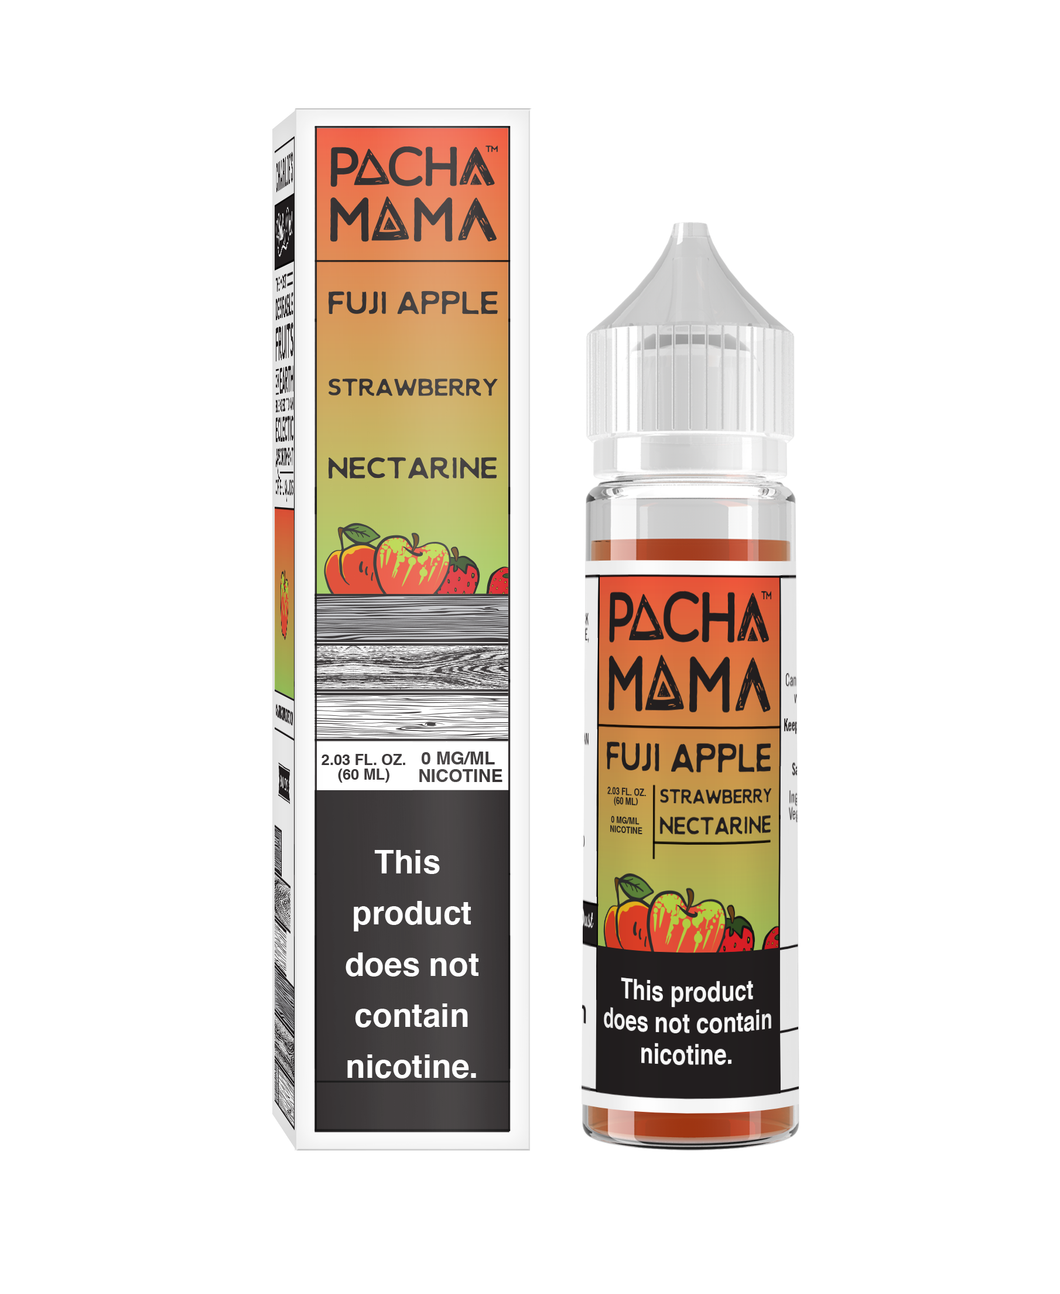 Pacha Mama: Fuji Apple Strawberry Nectarine